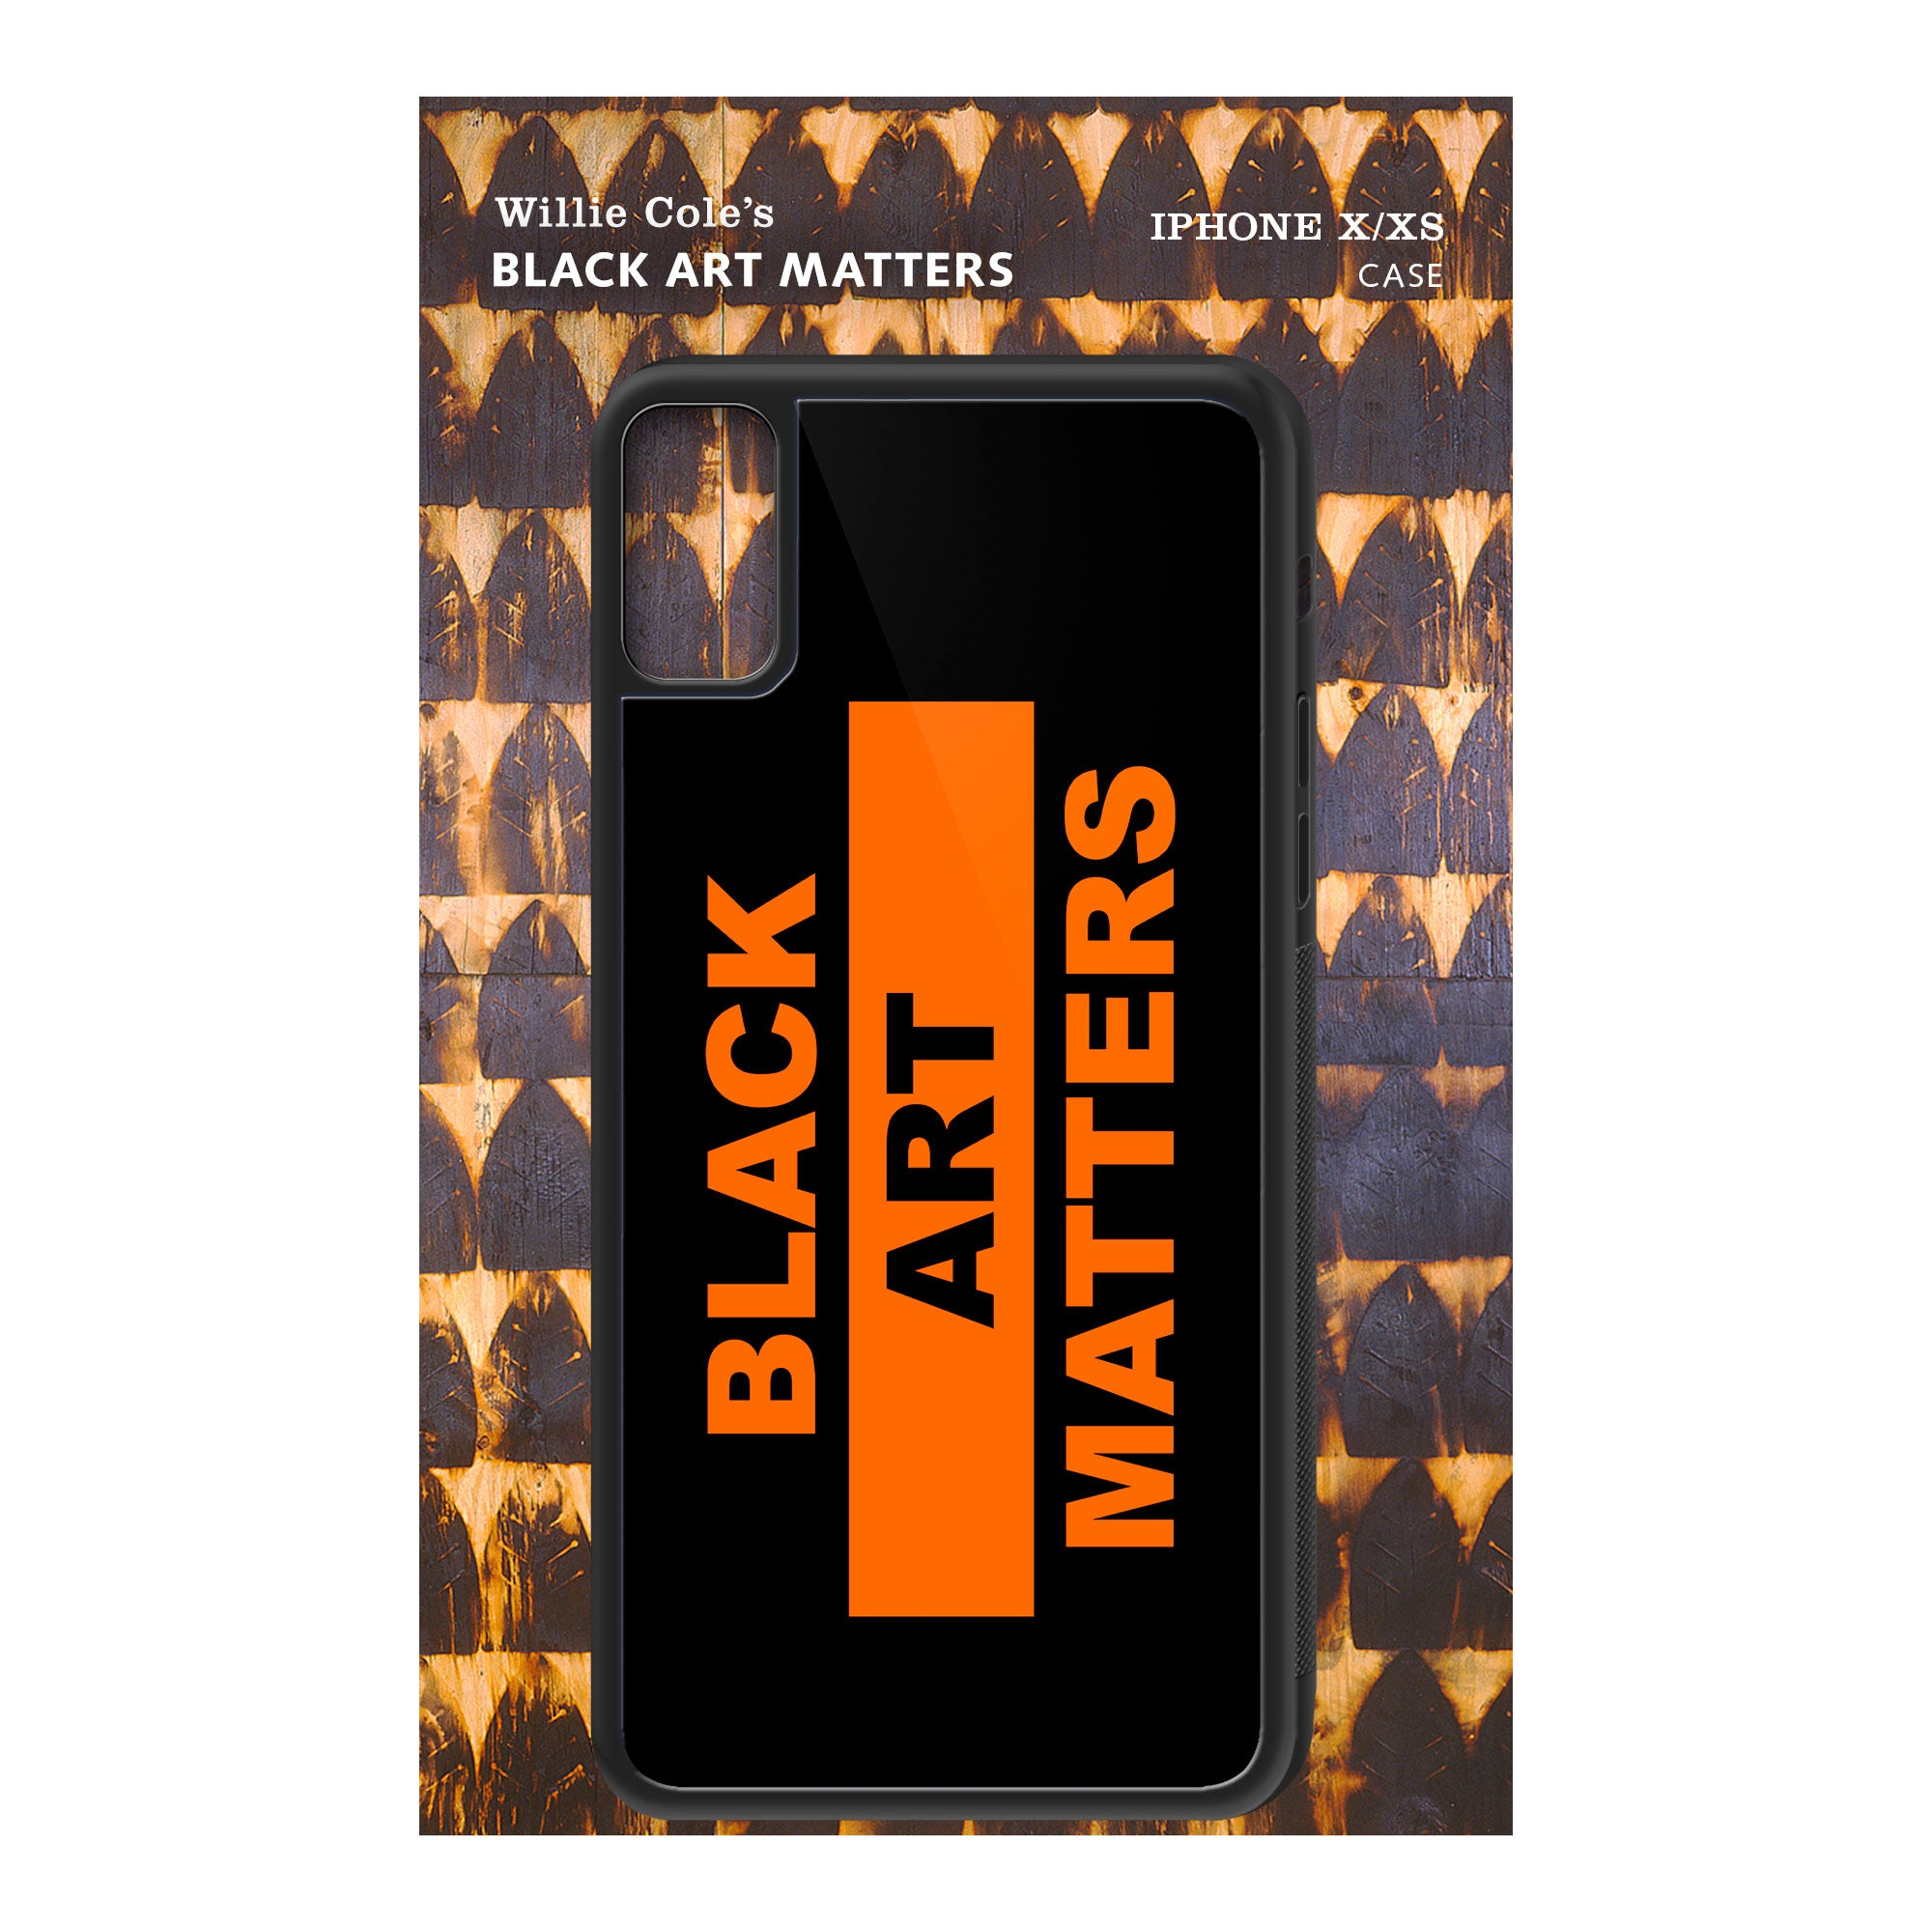 Willie Cole Black Art Matters iPhone Case